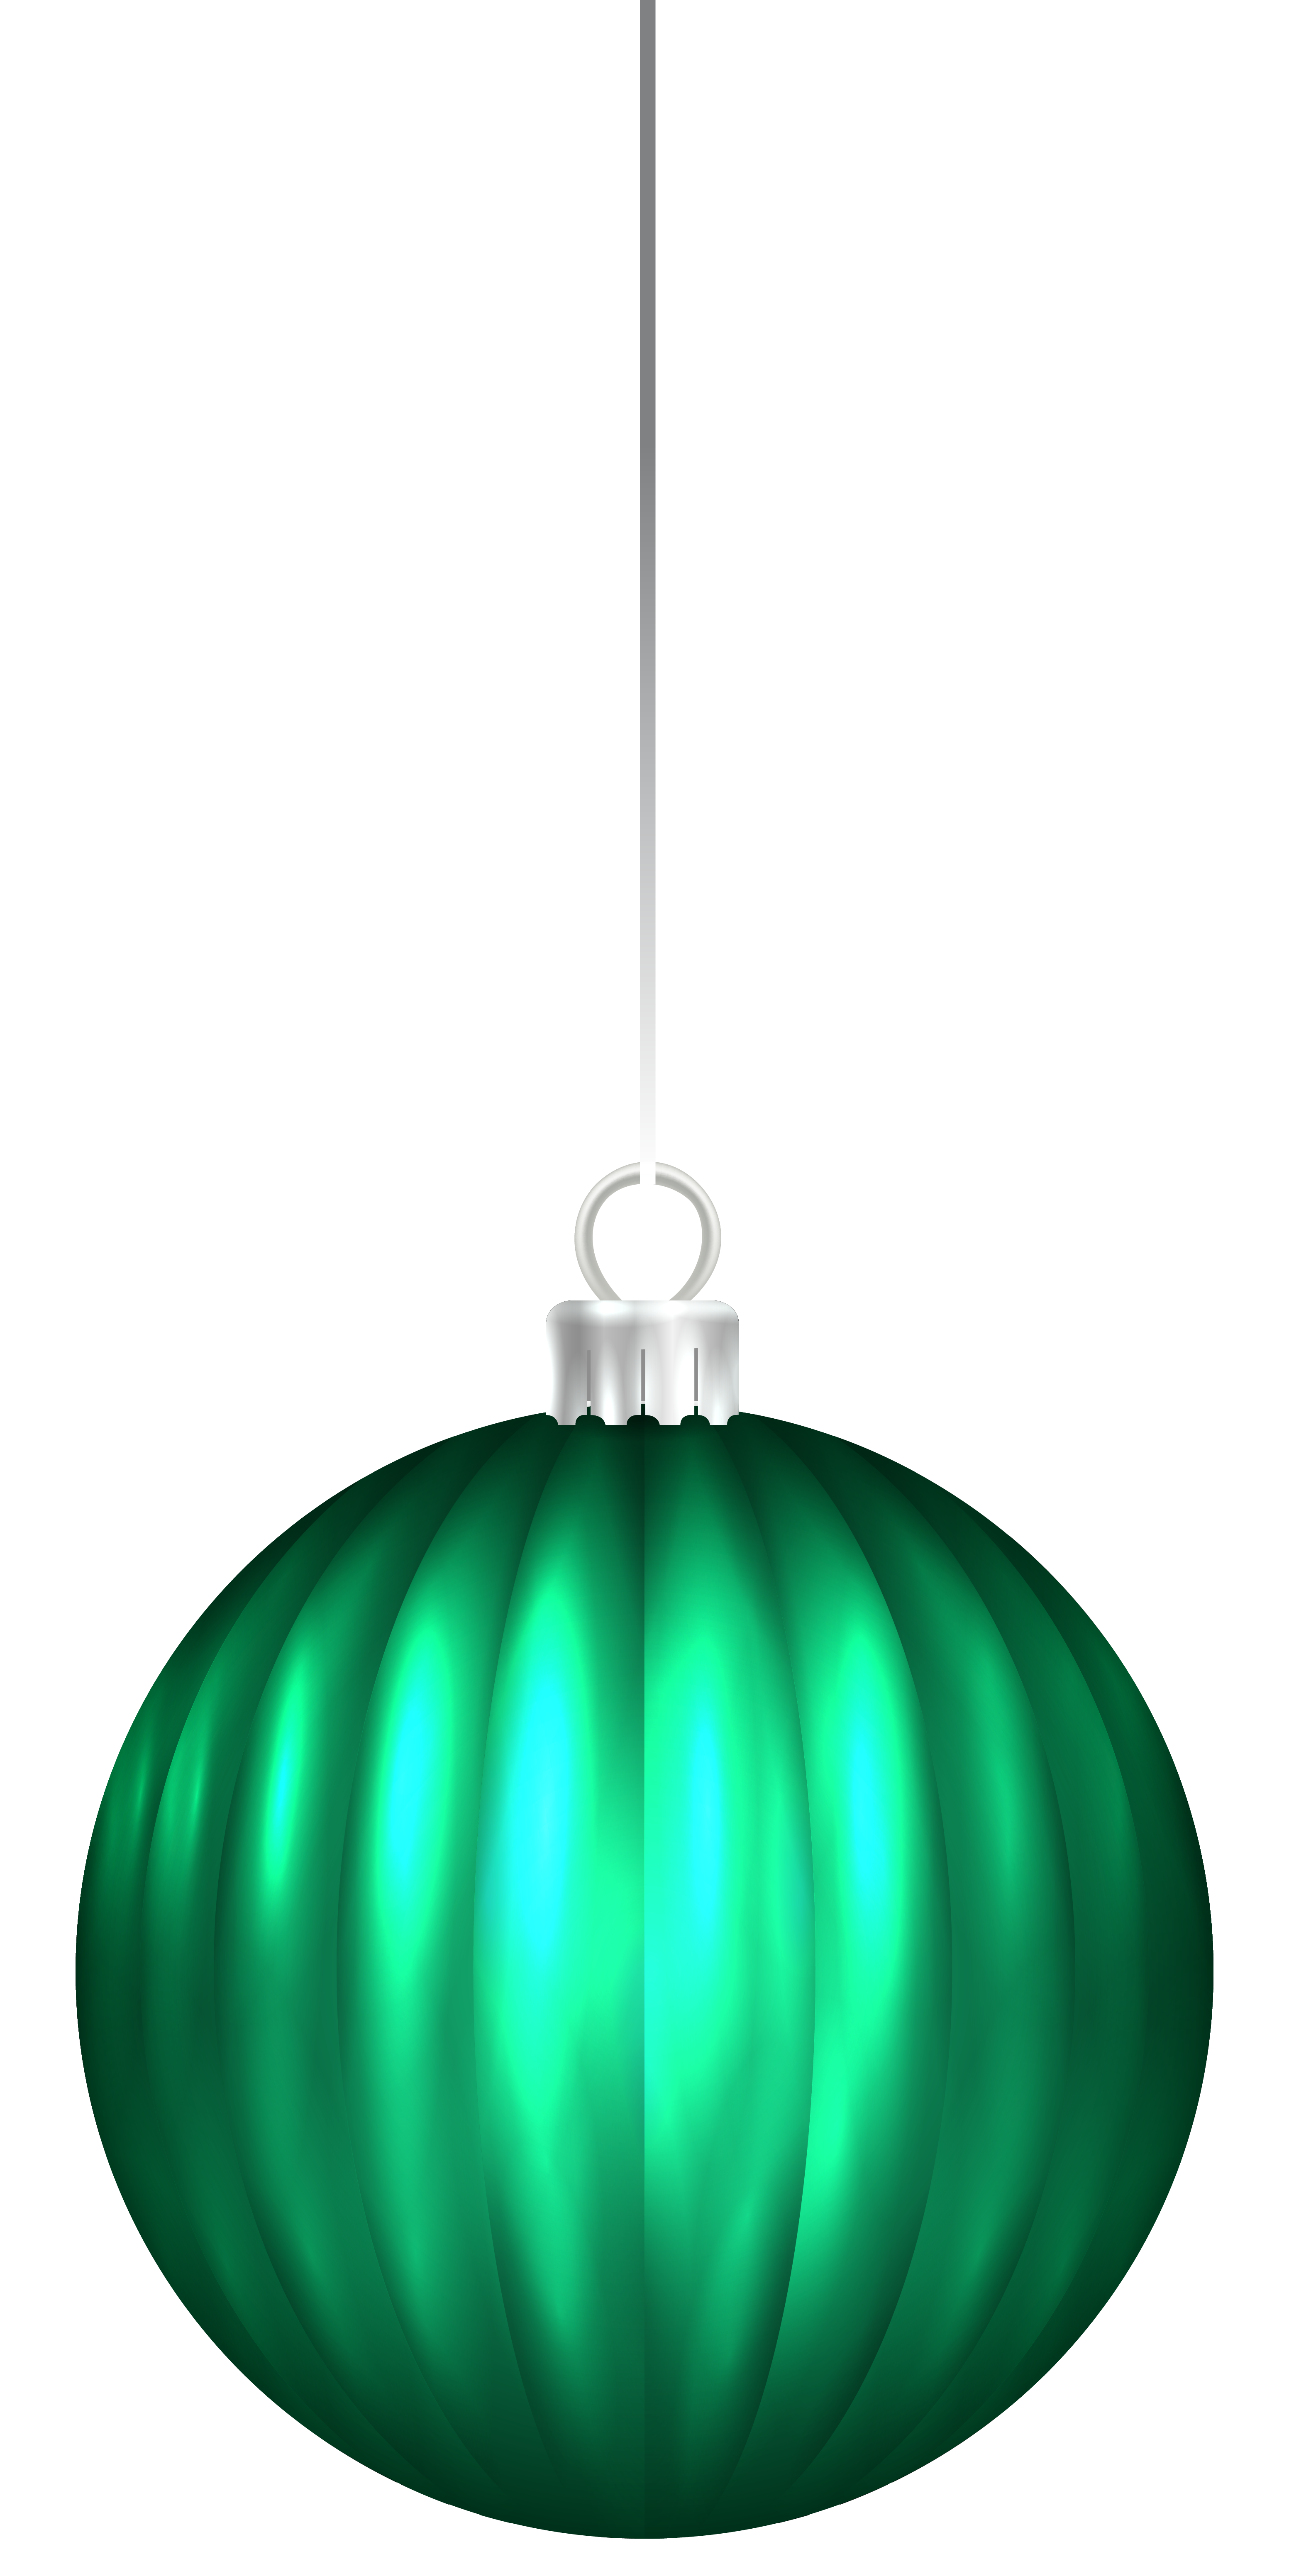 Green christmas ornaments clipart banner black and white download Green Christmas Ball Ornament PNG Clip Art Image | Gallery ... banner black and white download